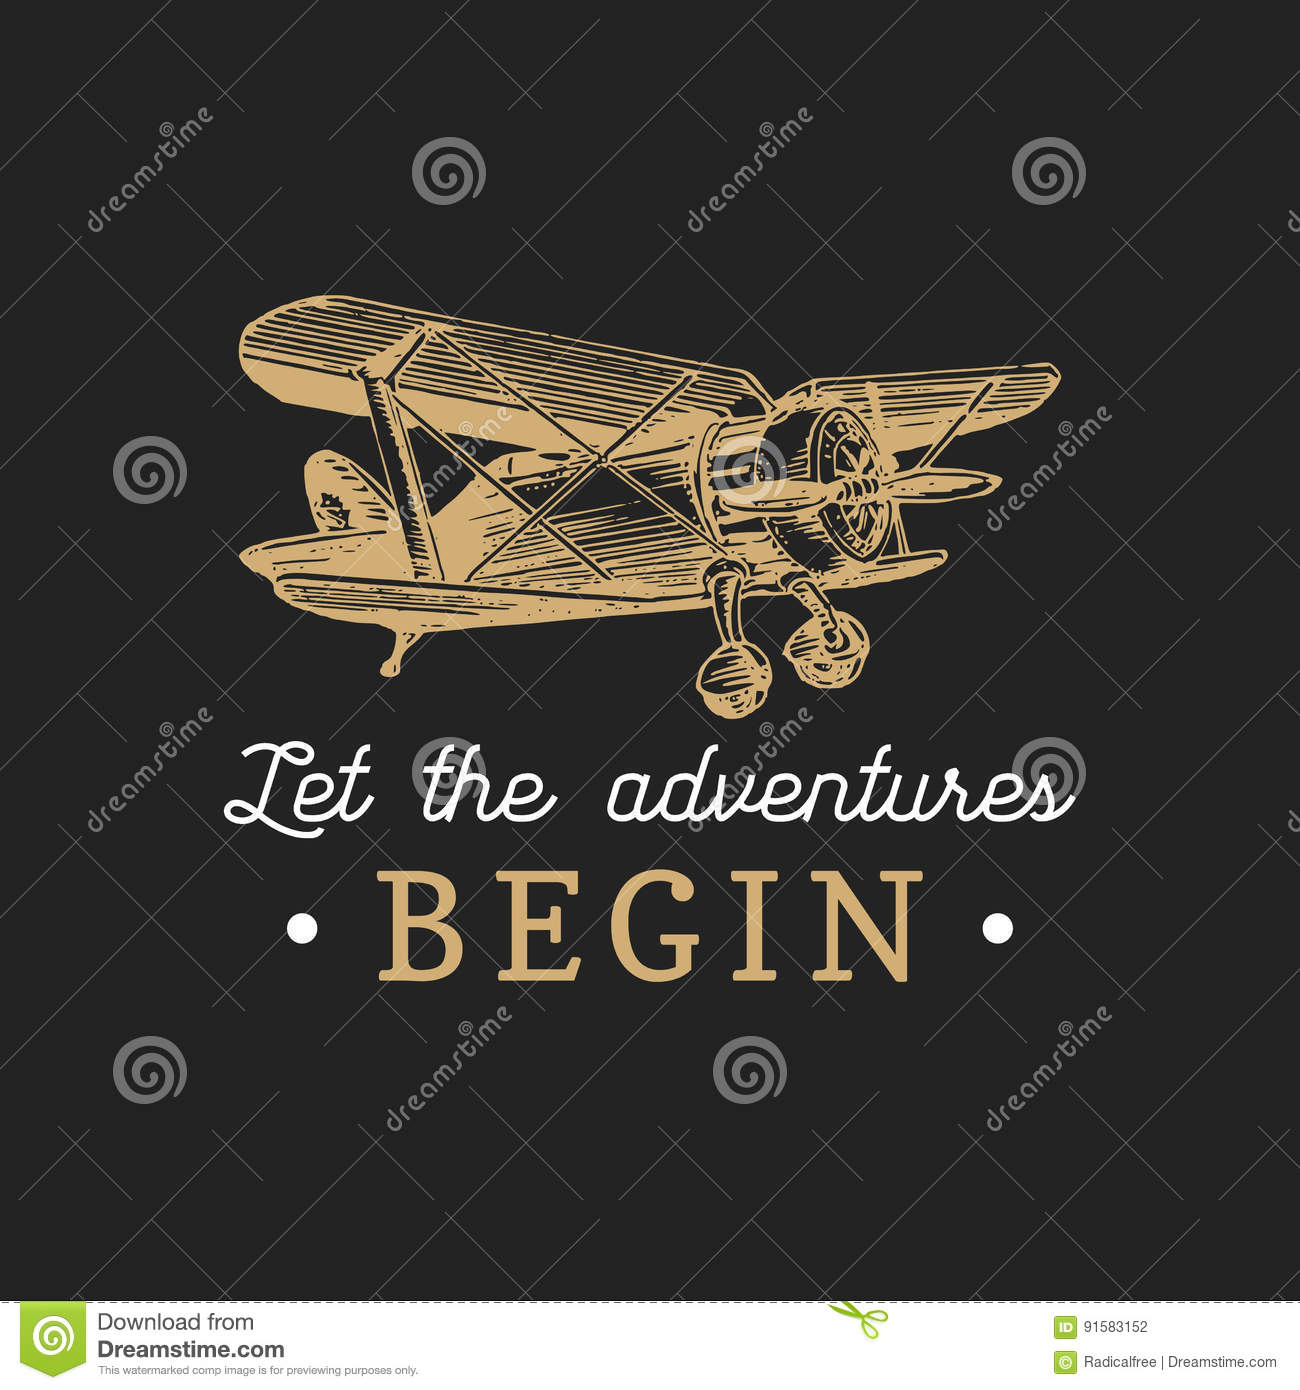 Let the adventures begin motivational quote. Vintage retro airplane logo. Vector hand sketched aviation illustration.